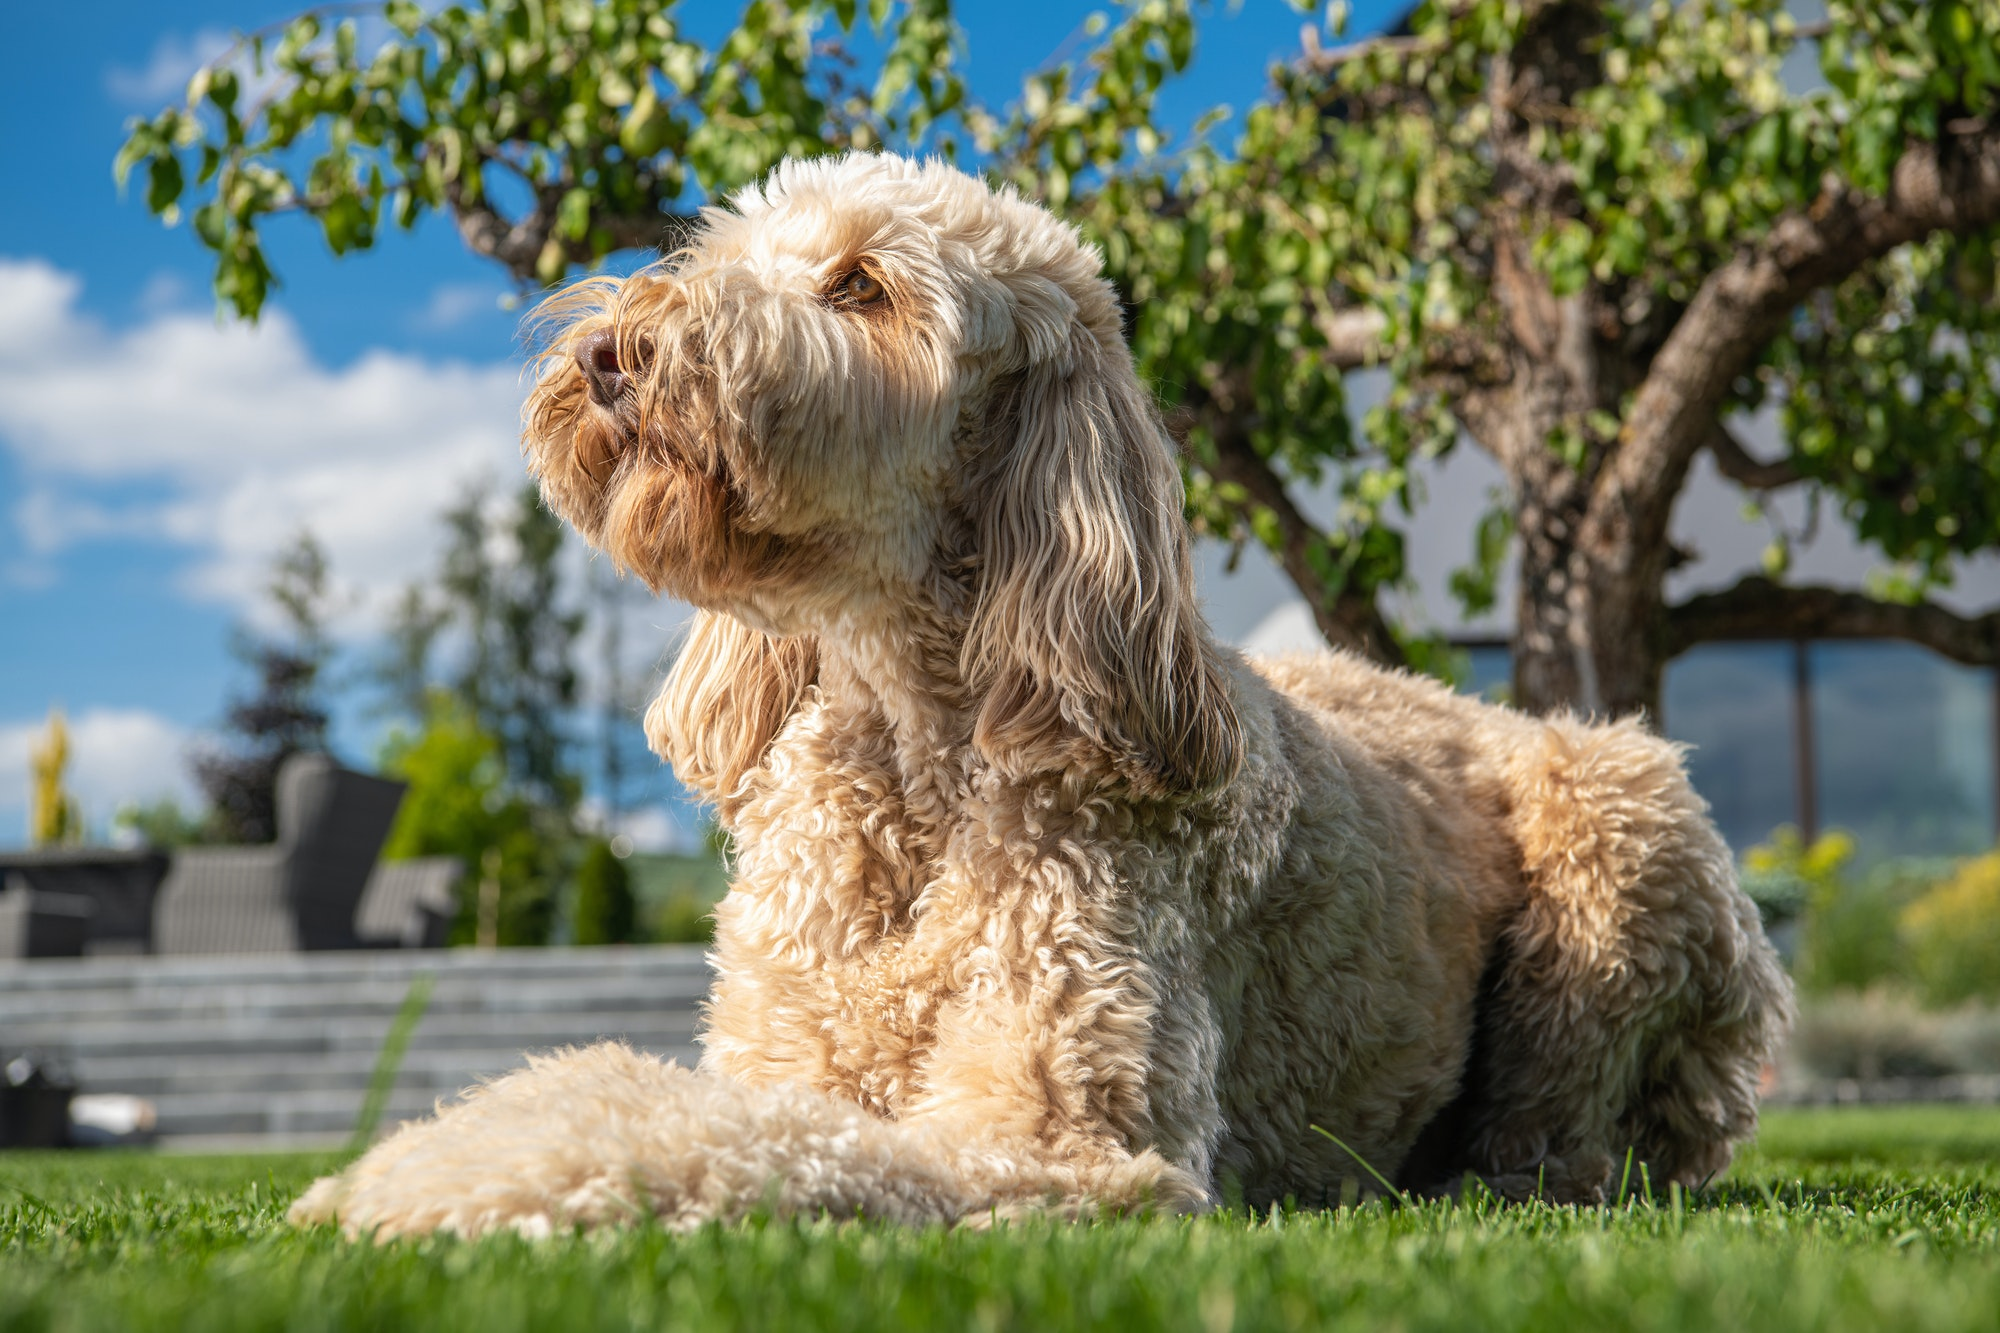 Obedient Goldendoodle Dog Relaxing in the Sun